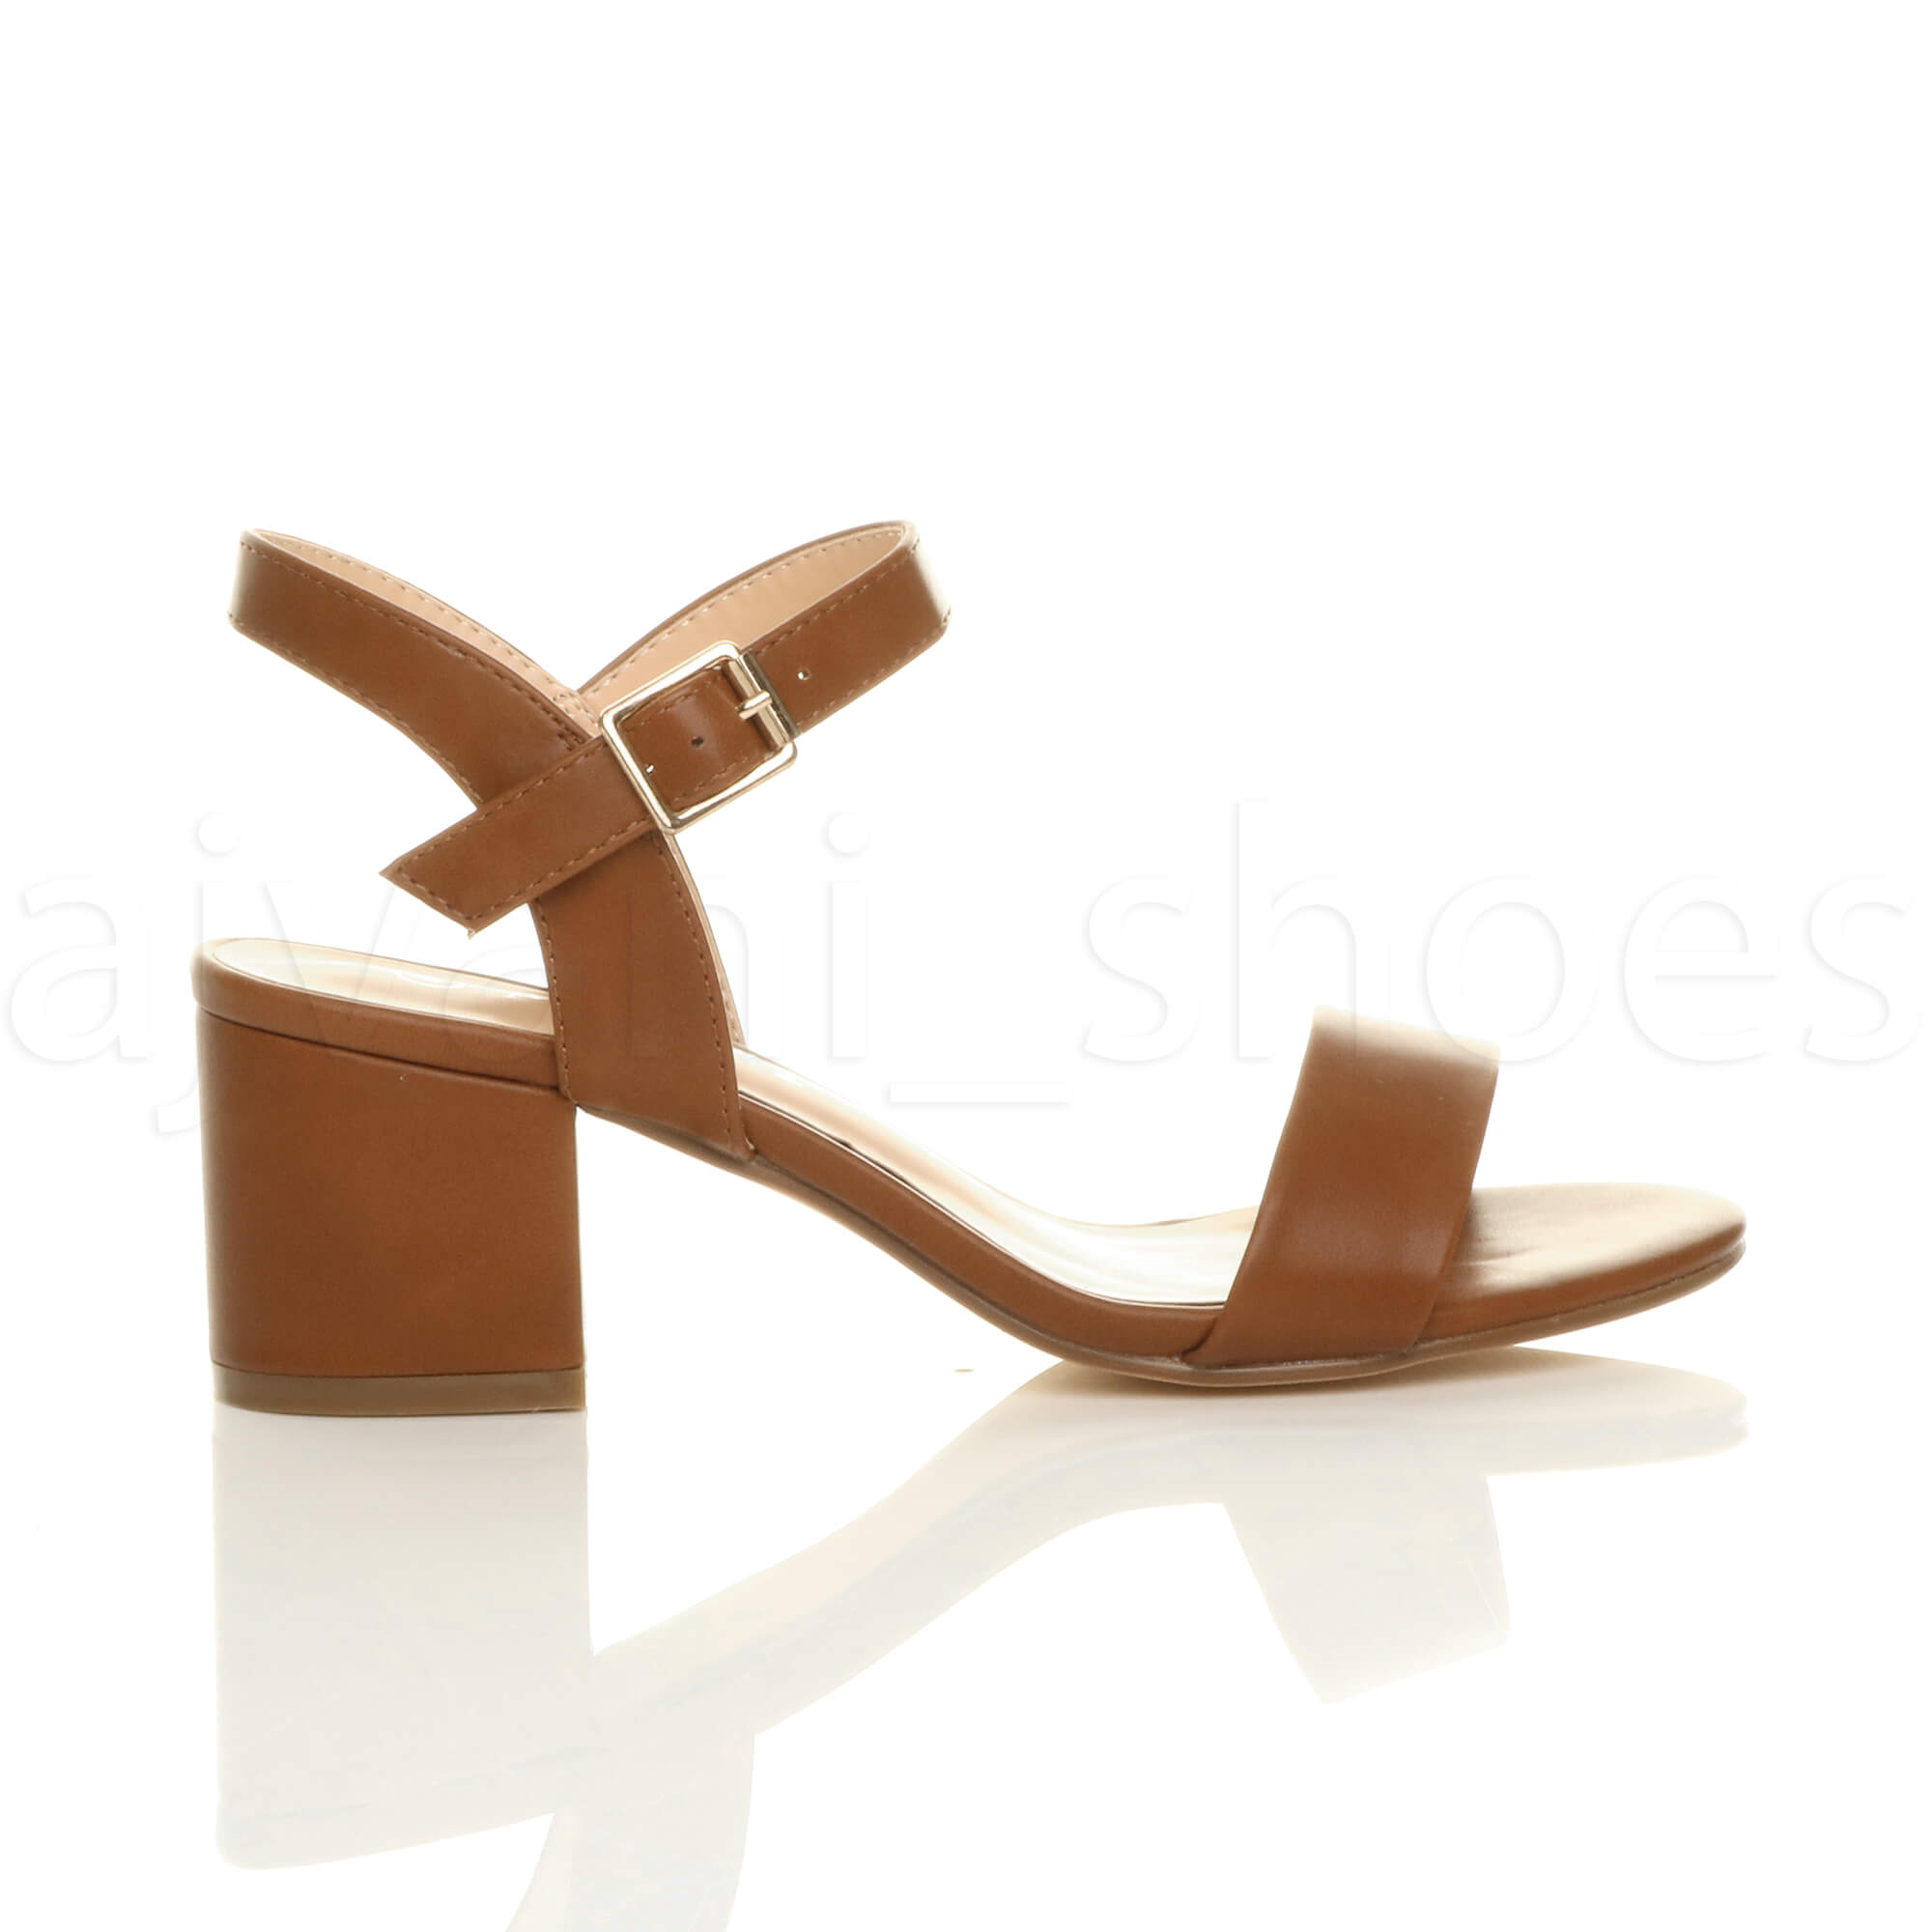 WOMENS-LADIES-MID-LOW-BLOCK-HEEL-PEEP-TOE-ANKLE-STRAP-STRAPPY-PARTY-SANDALS-SIZE thumbnail 139